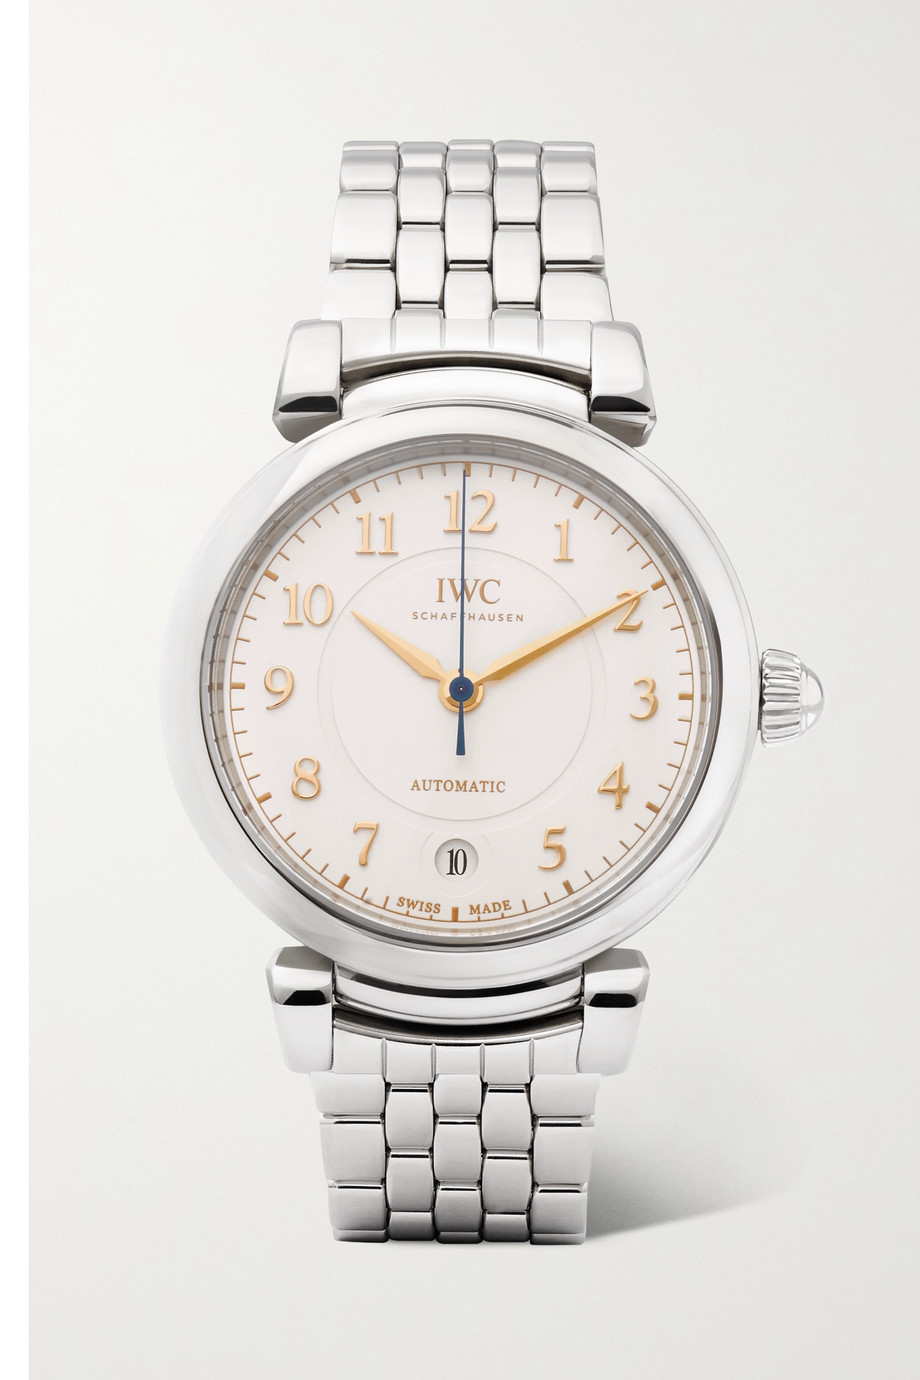 IWC SCHAFFHAUSEN Da Vinci Automatic 36mm stainless steel watch